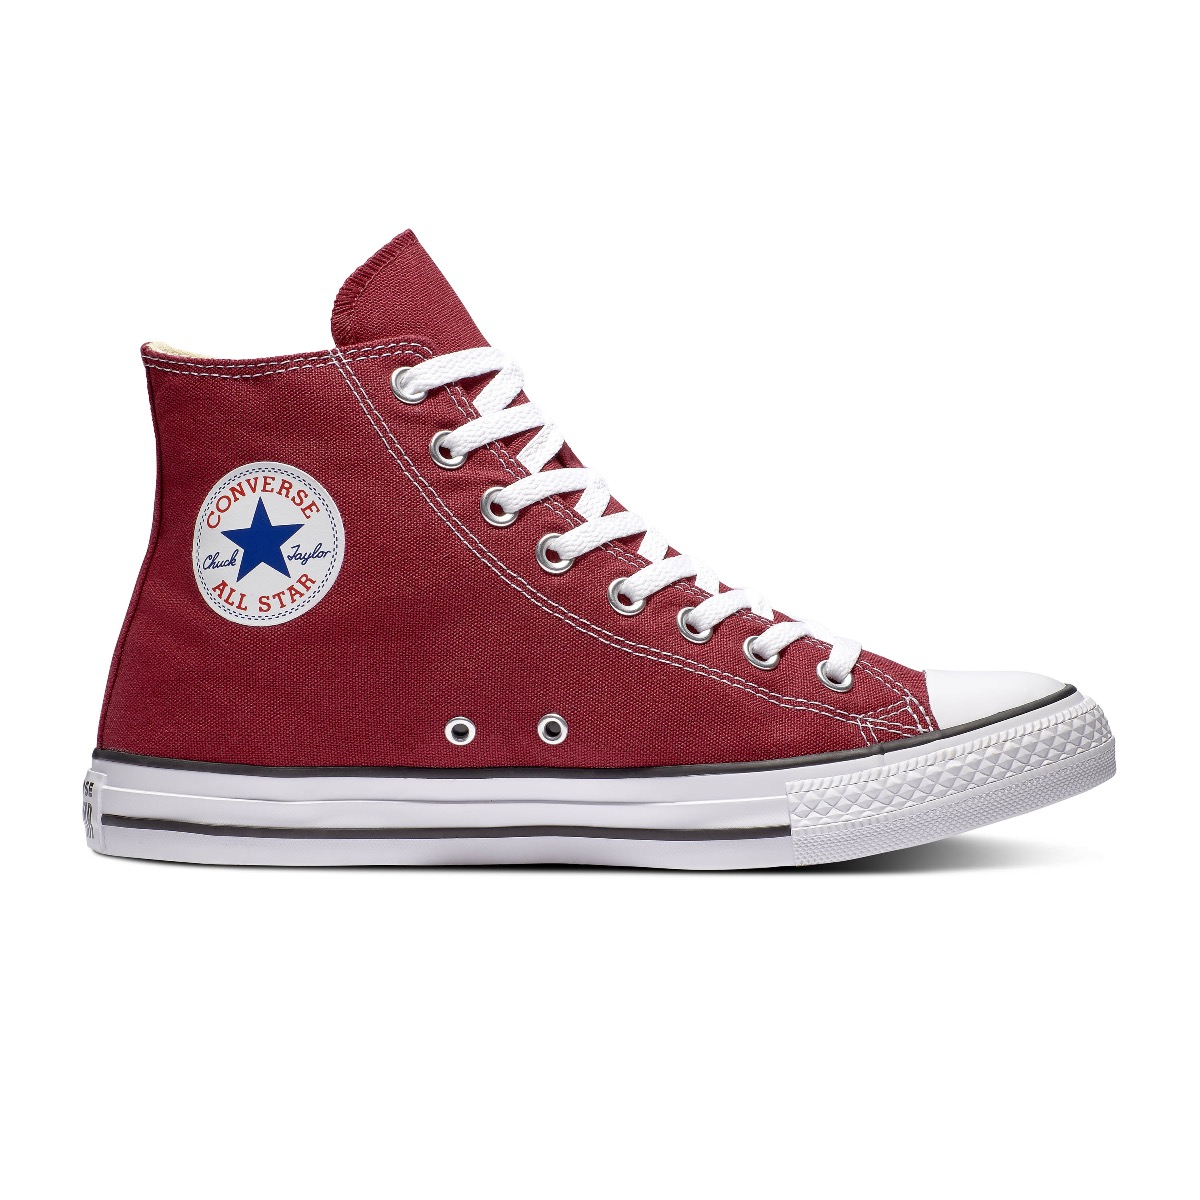 Converse All Stars Hoog Bordeaux Rood